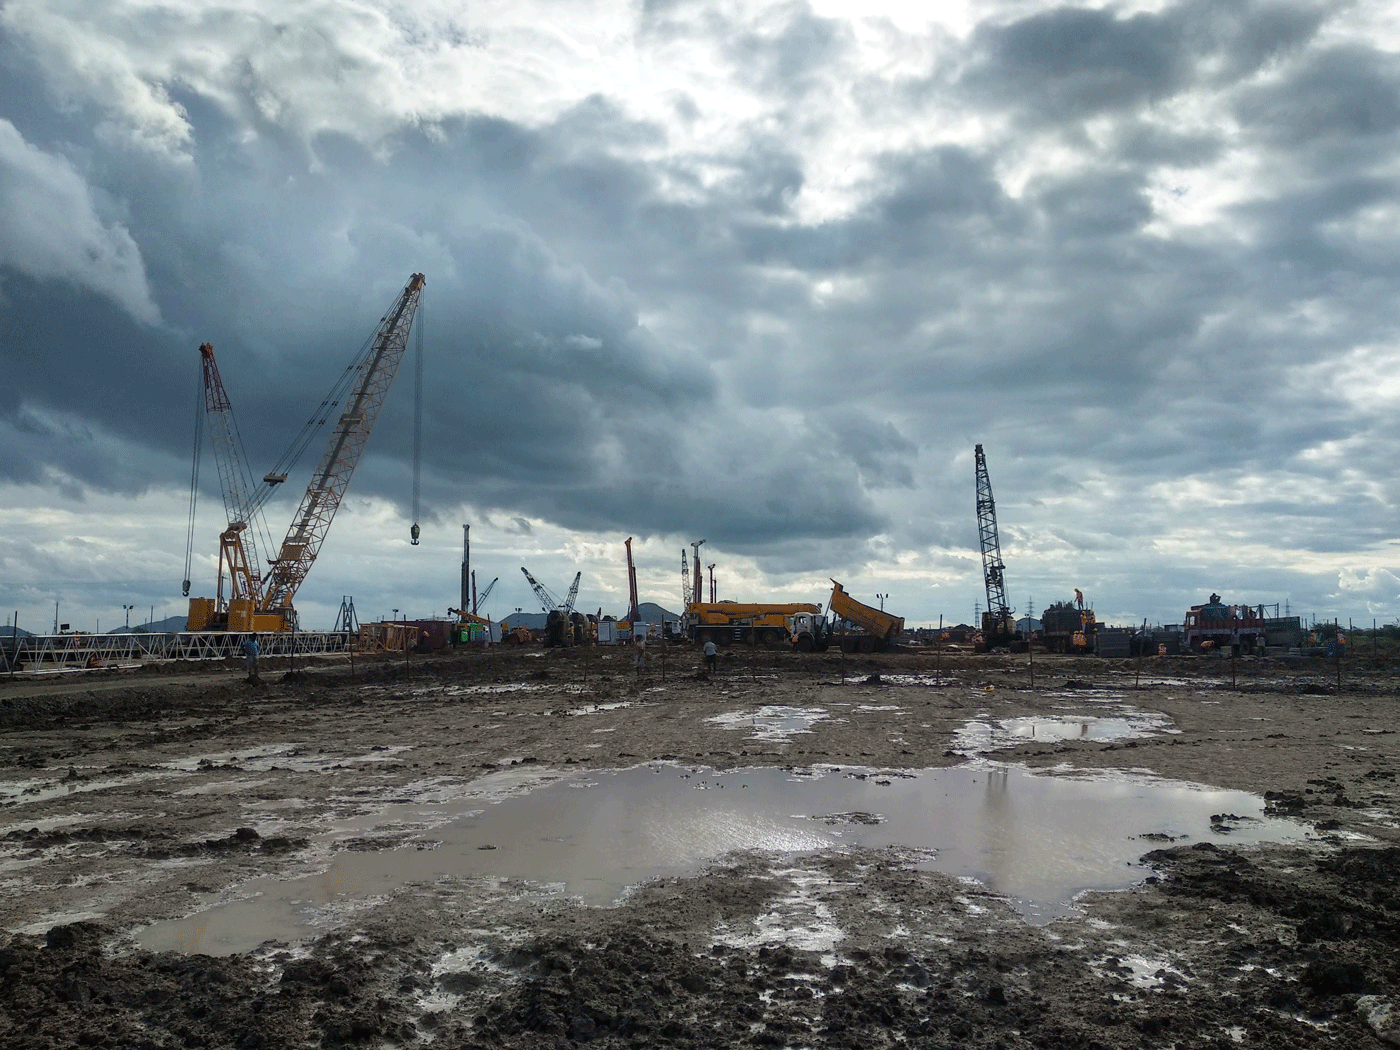 Construction work- Wide angle.